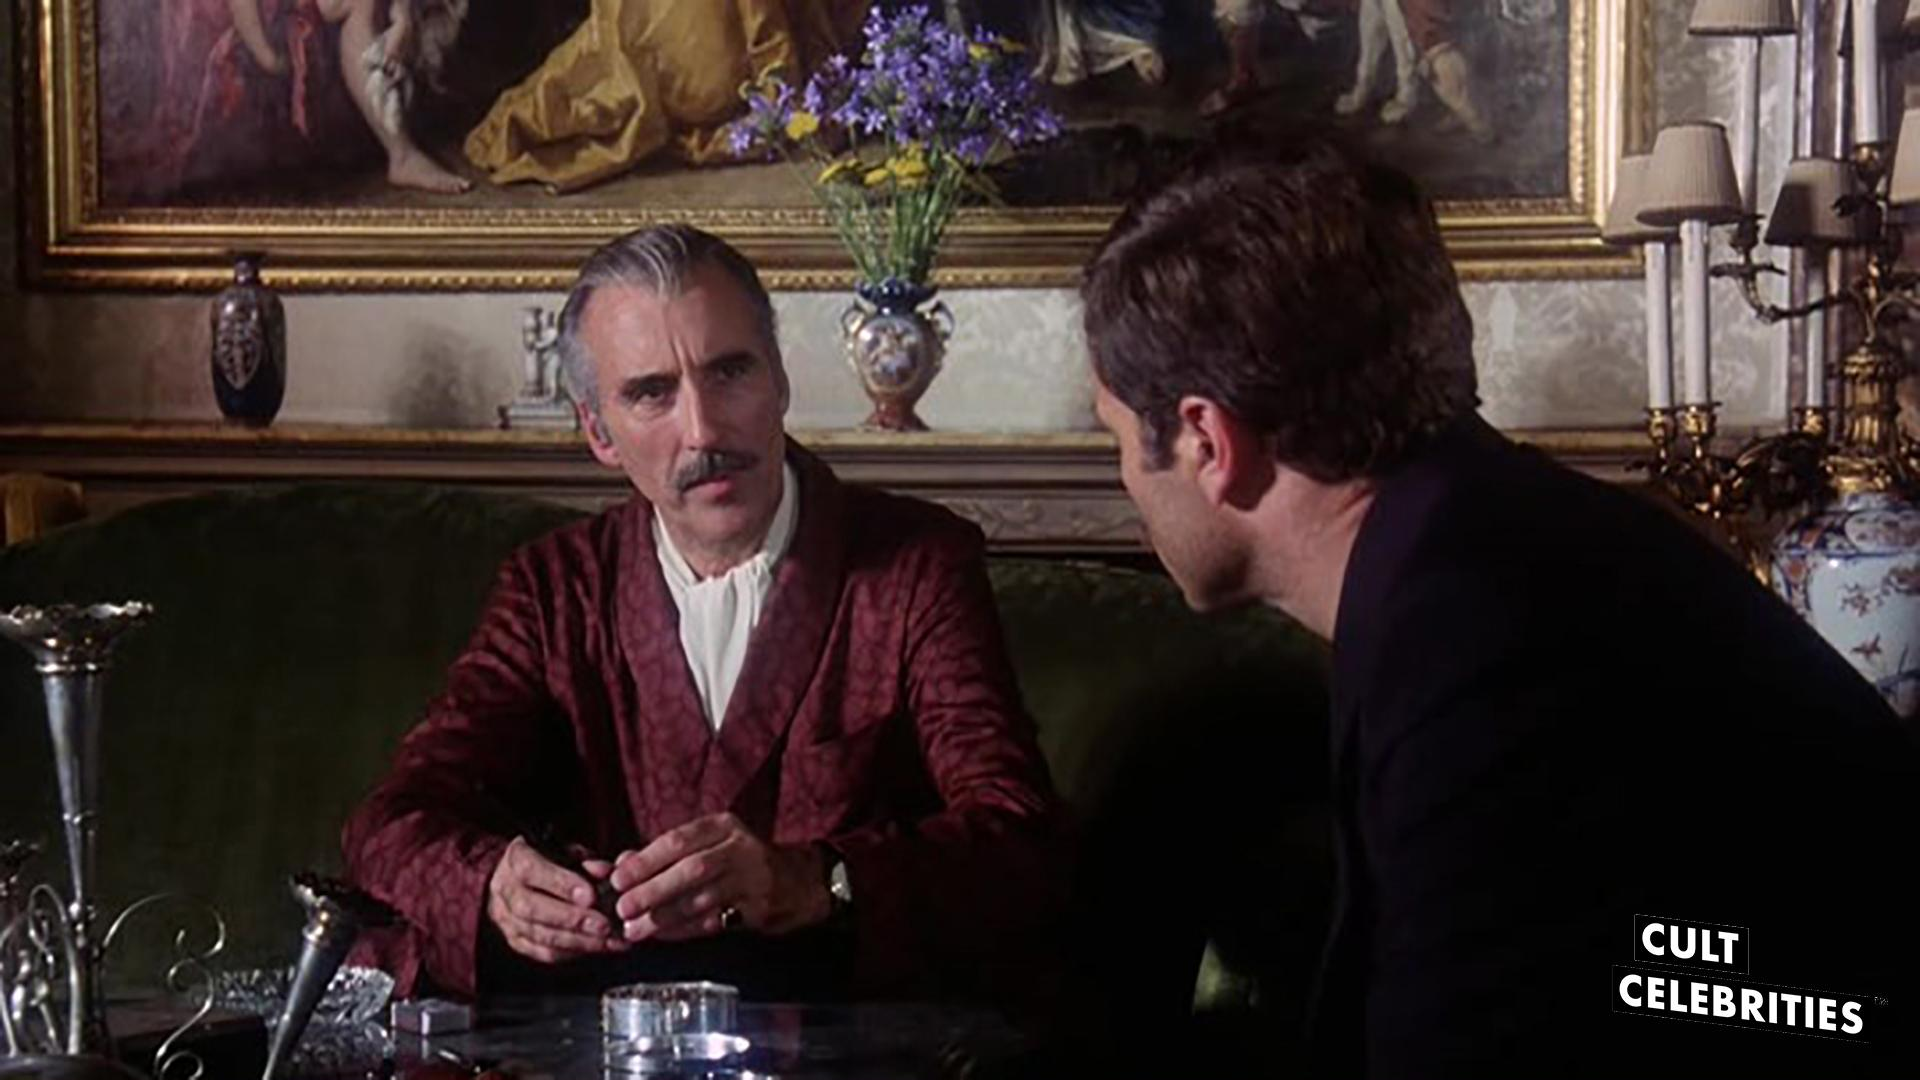 Christopher Lee and Franco Nero in The Salamander (1981)